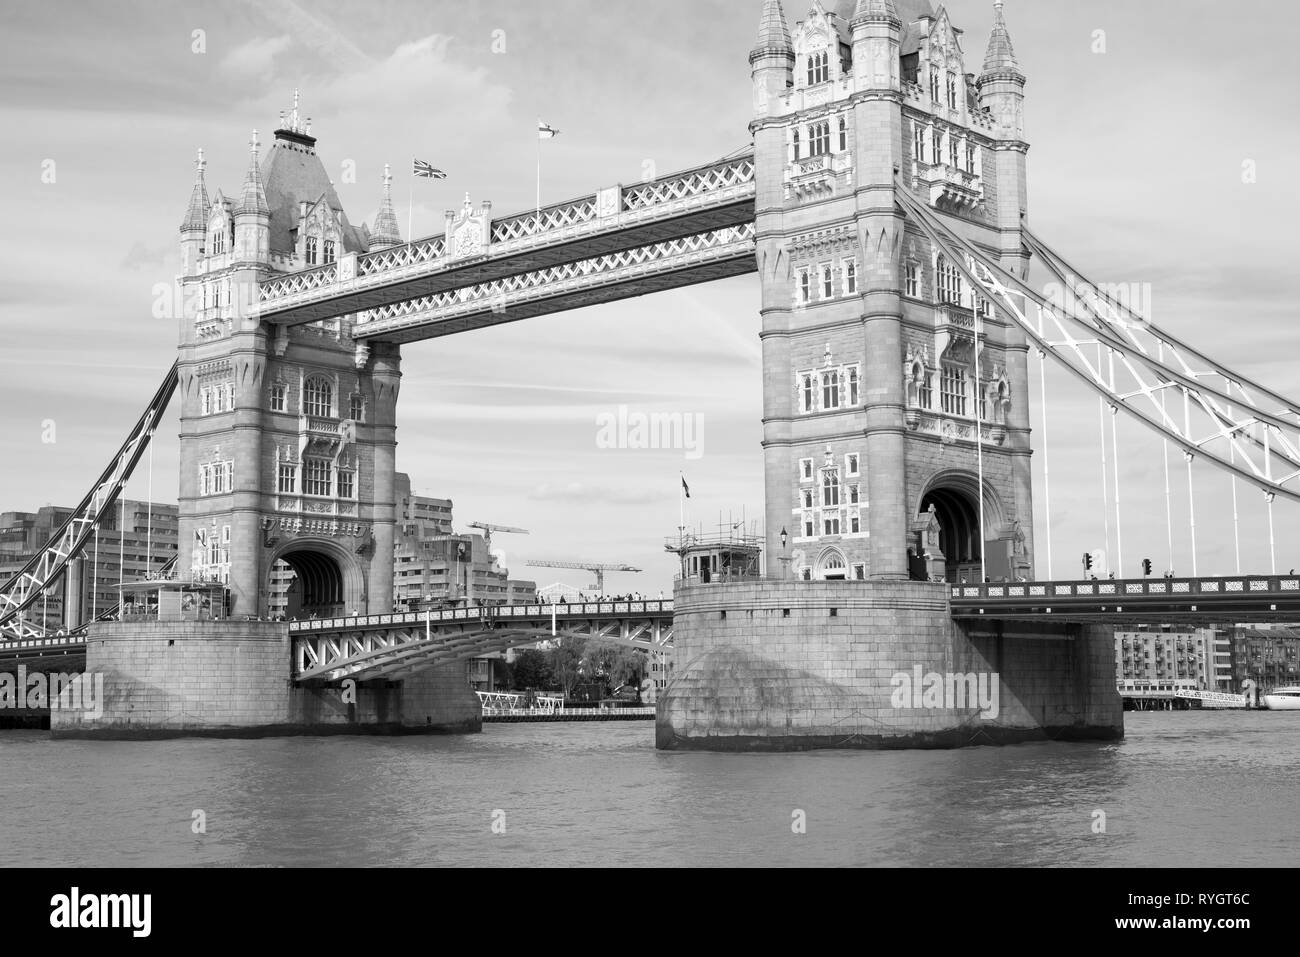 london's tower bridge over the river thames - Stock Image